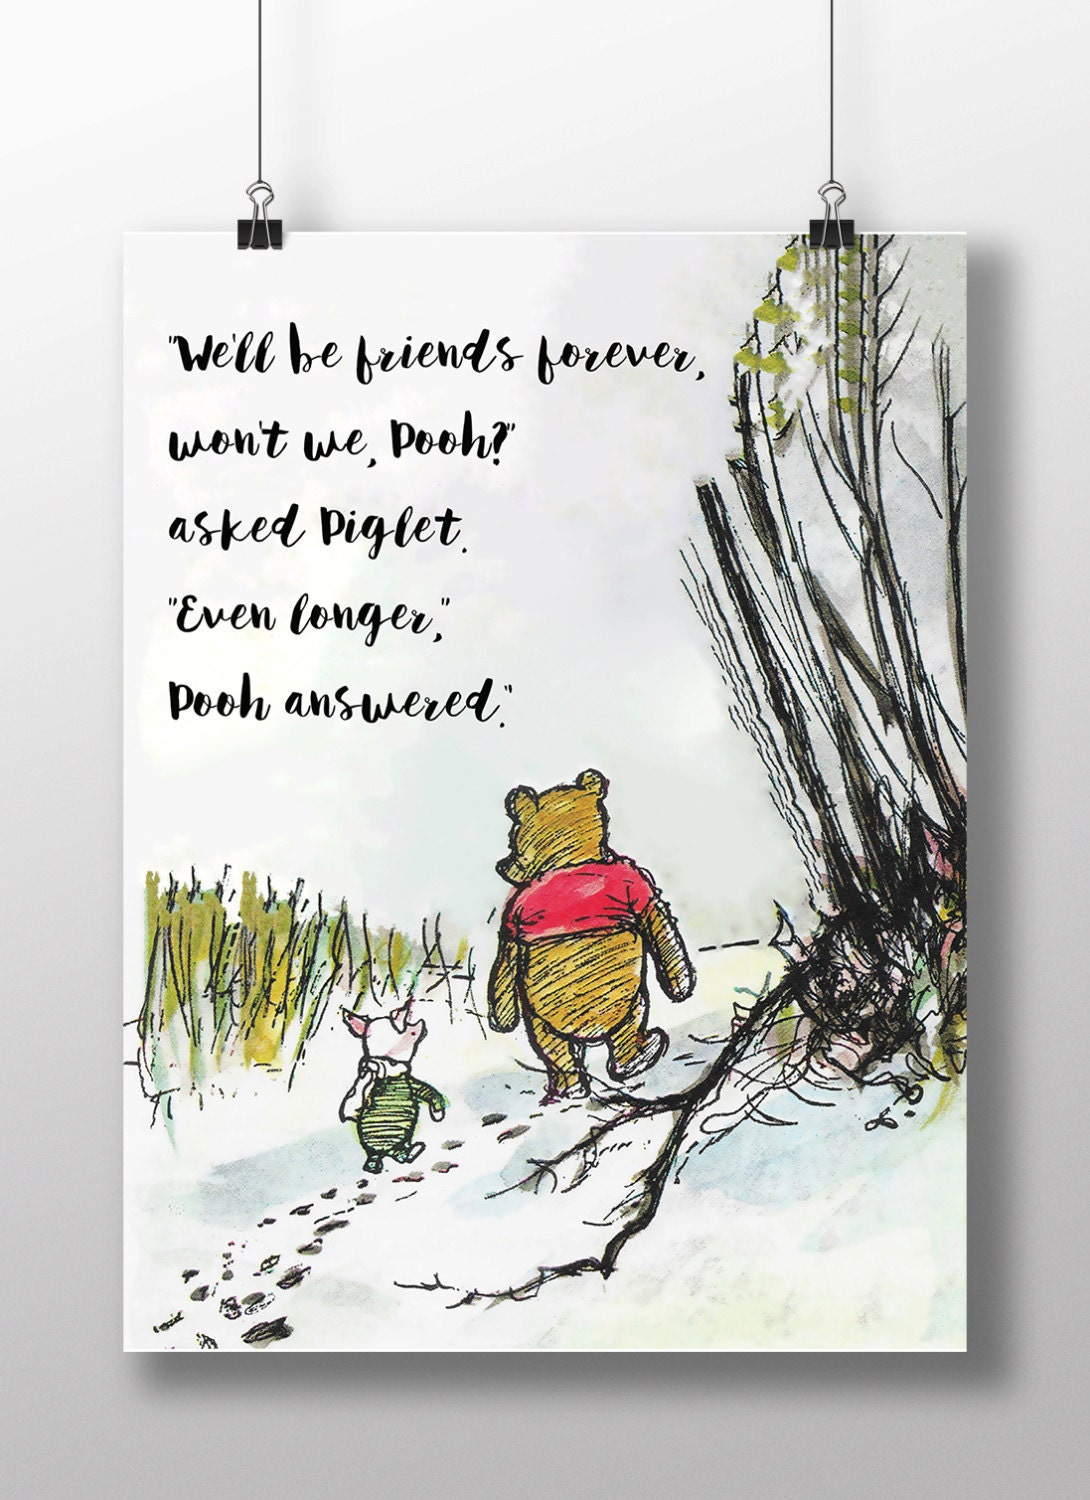 Winnie The Pooh Quotes About Love And Friendship Winnie The Pooh Quotes We'll Be Friends Forever